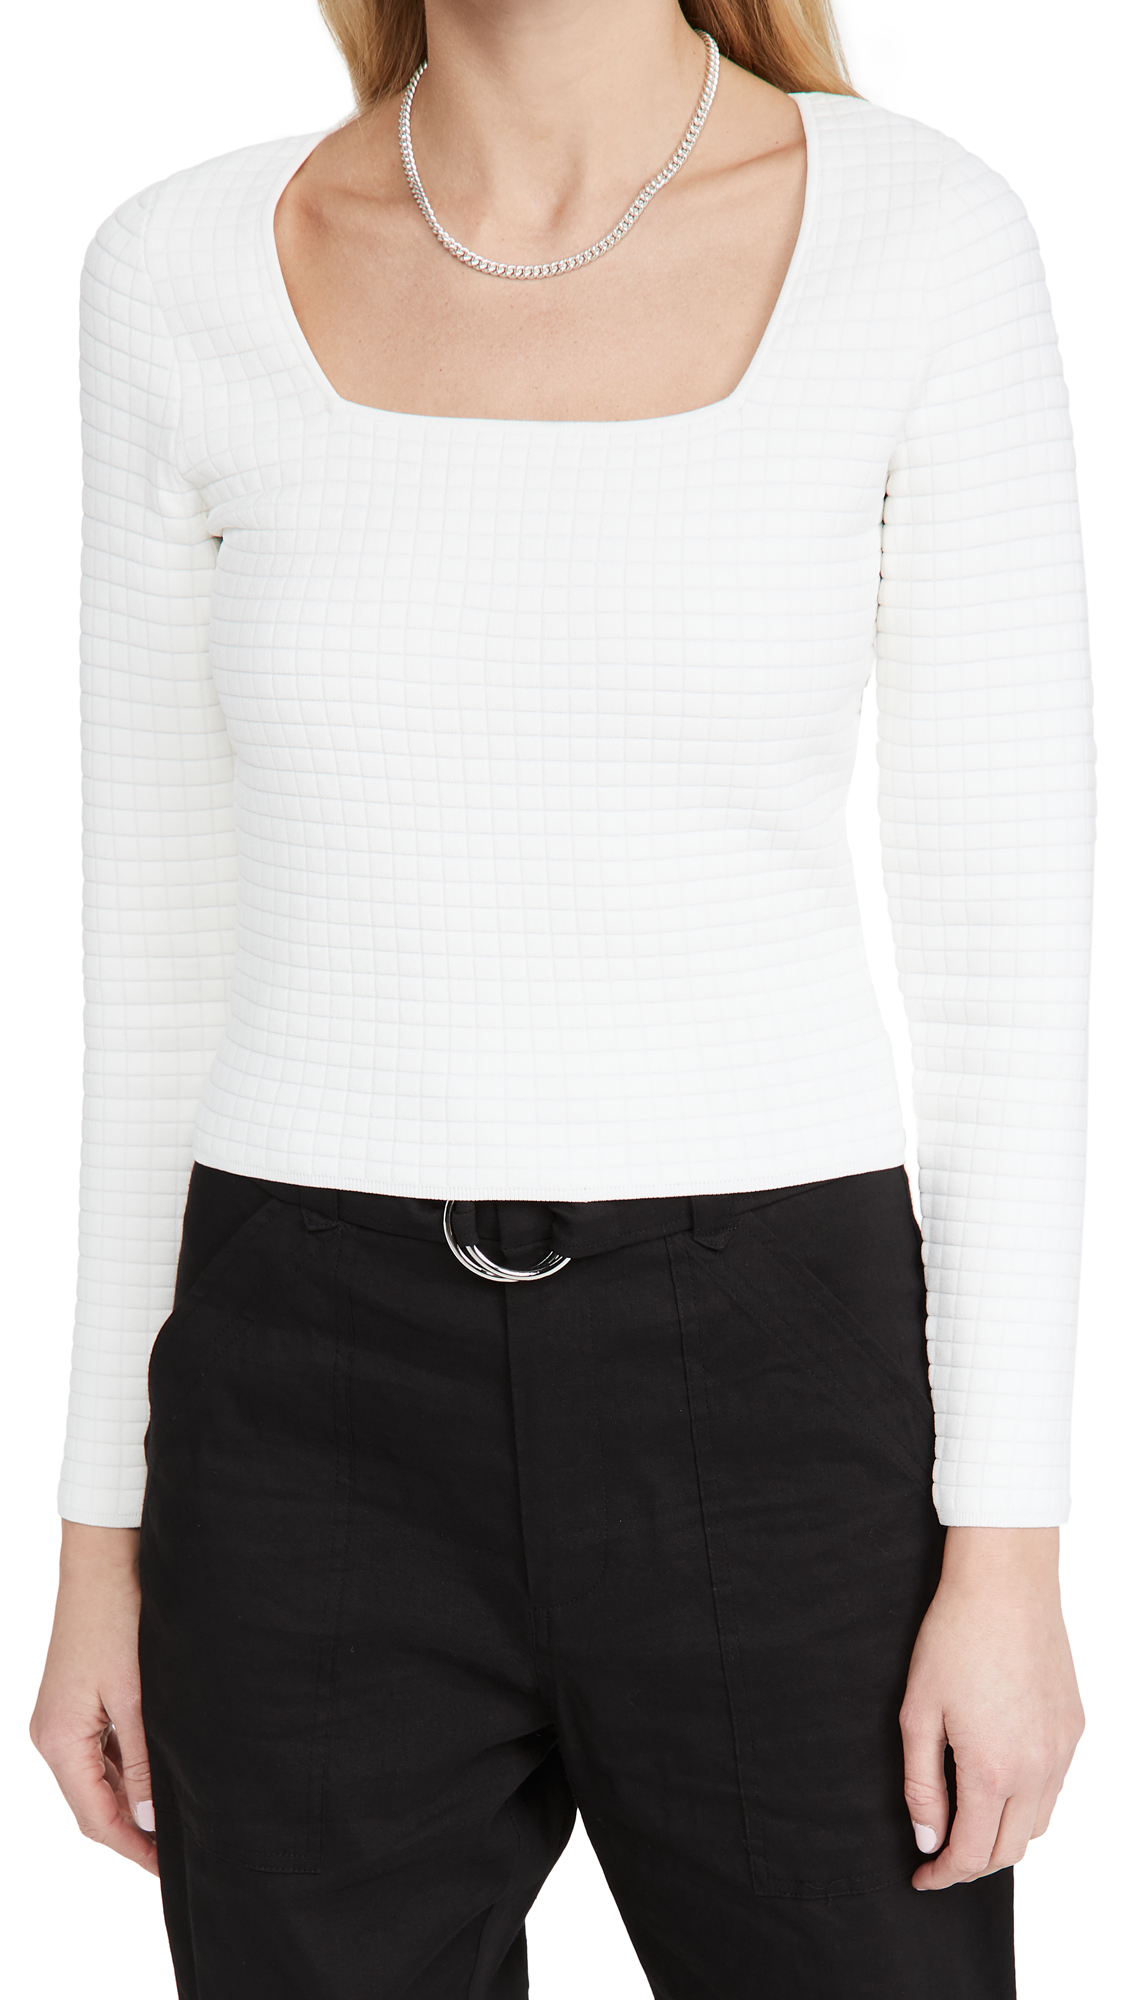 Proenza Schouler White Label Quilted Square Neck Long Sleeve Top